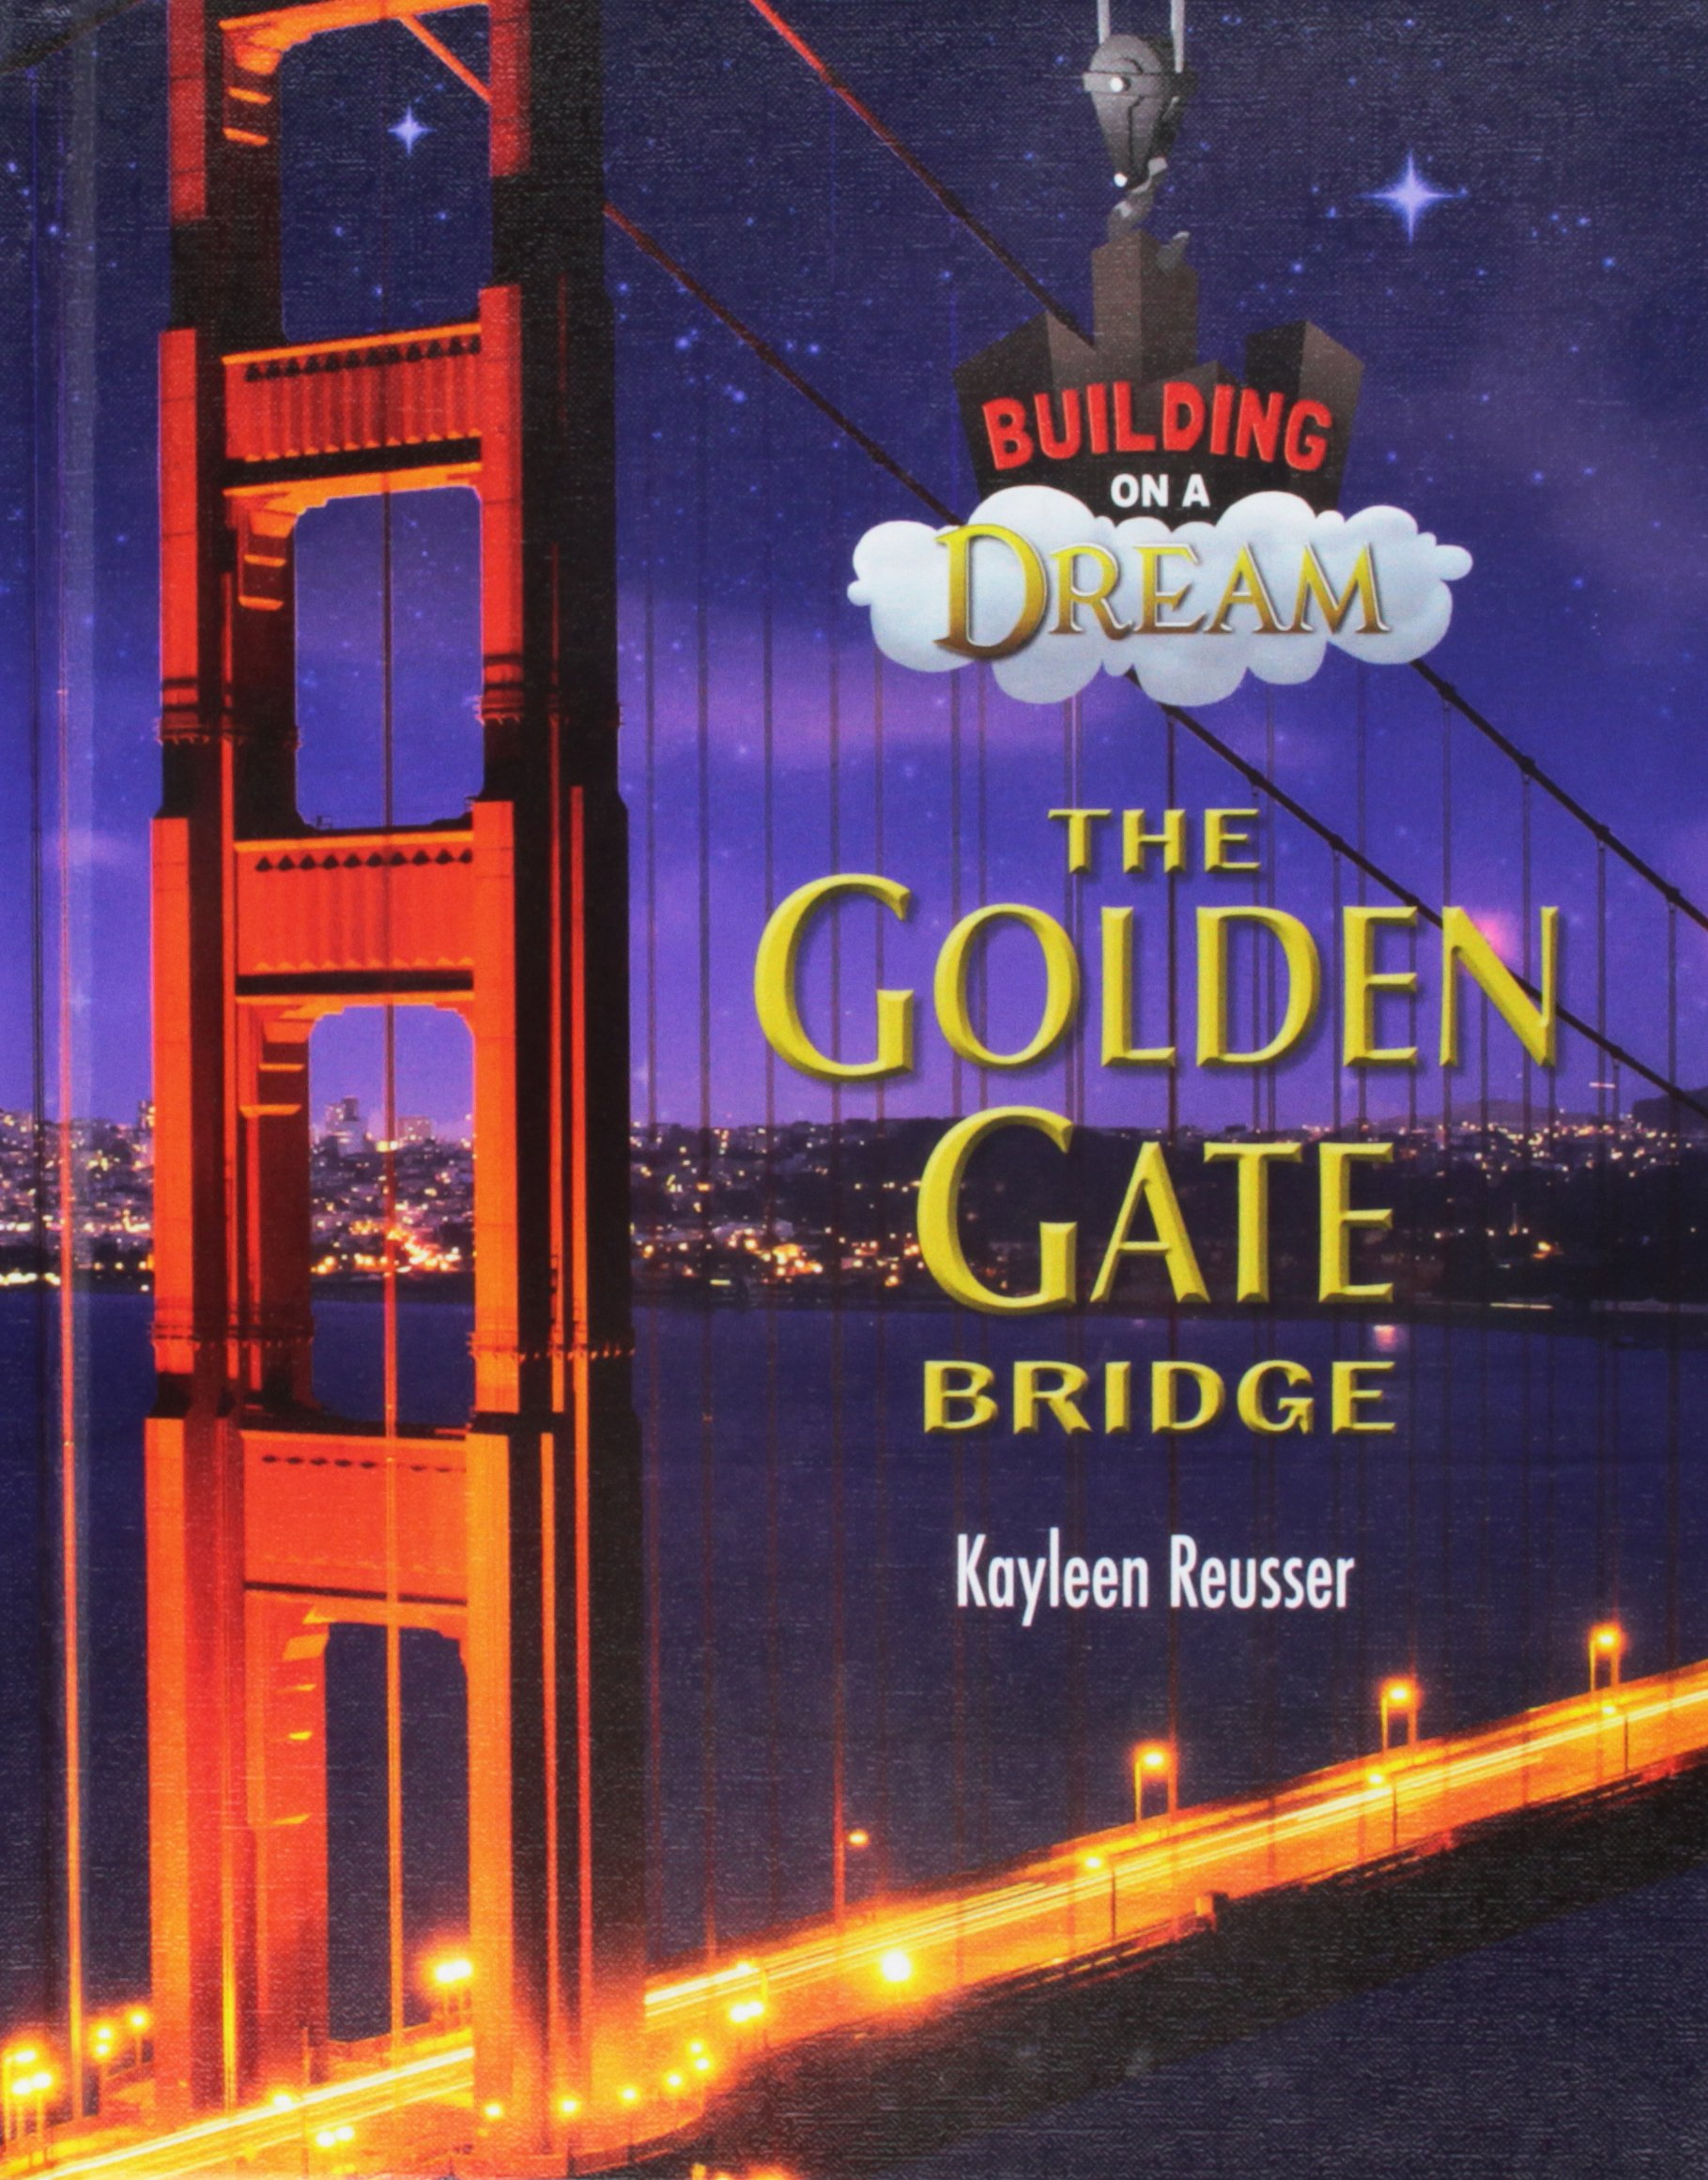 The Golden Gate Bridge (Building on a Dream)